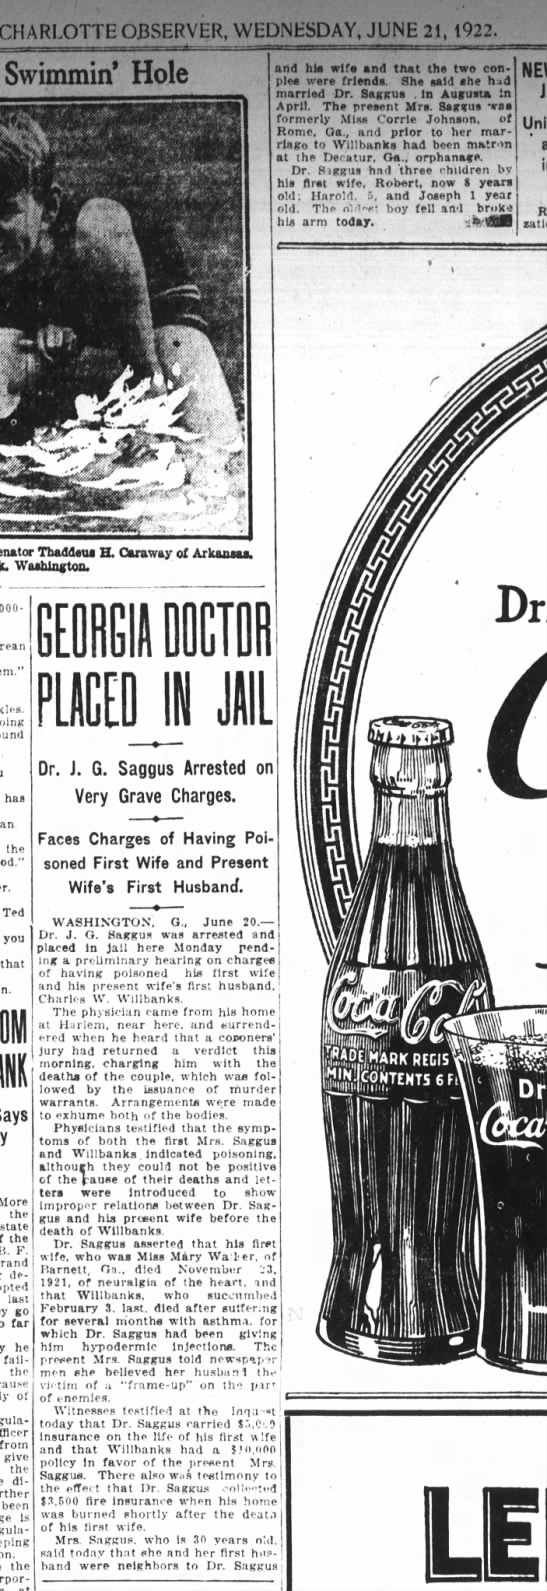 Charlotte Observer 21 Jun 1922, Page 15: Dr. Saggus, Georgia Doctor Arrested -